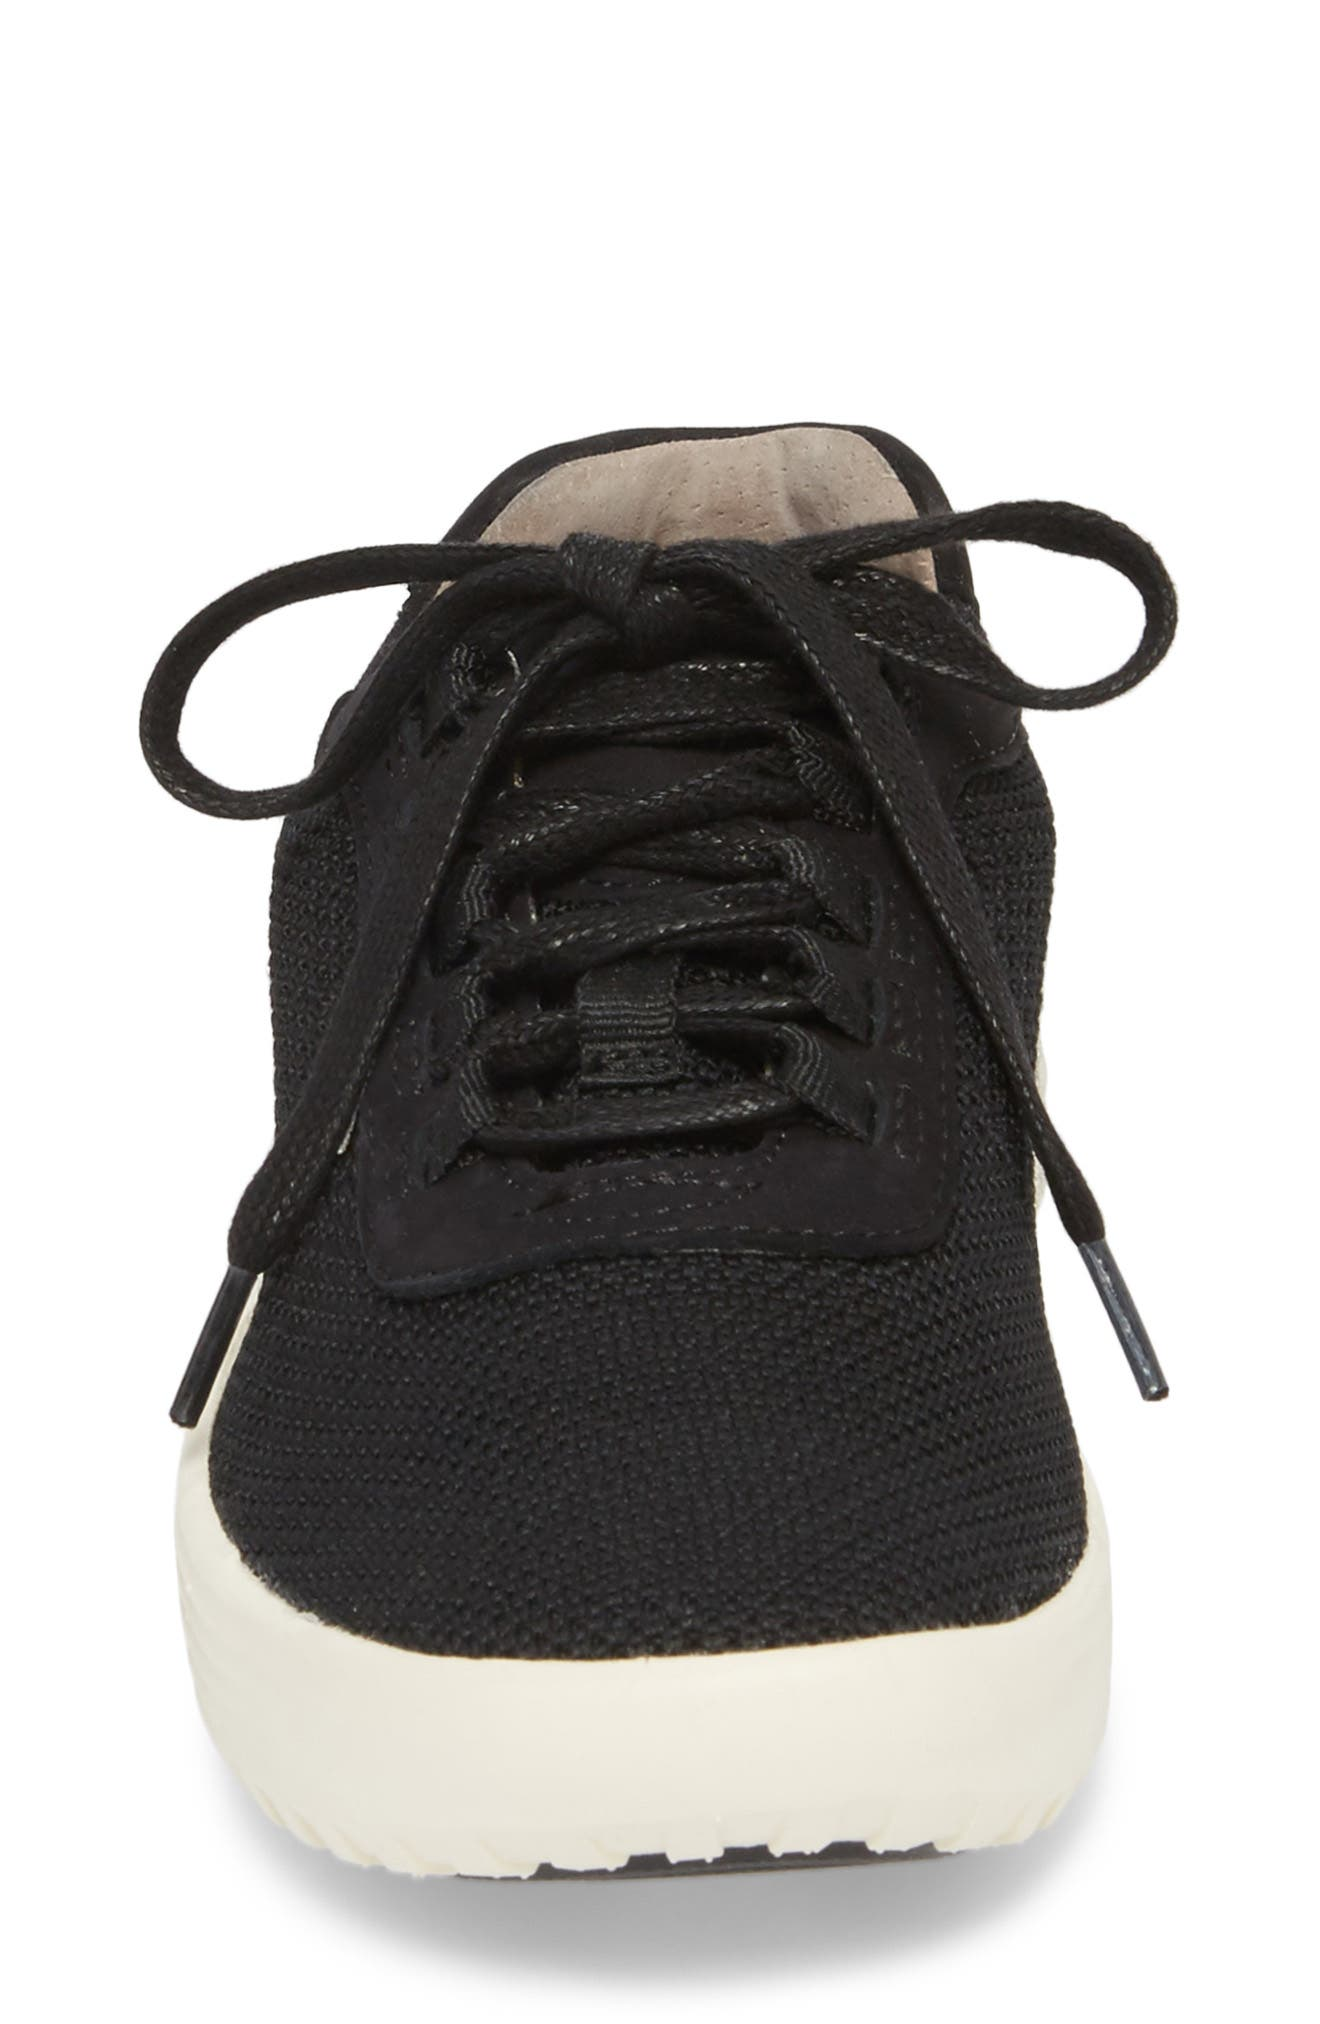 Malibu Sneaker,                             Alternate thumbnail 4, color,                             BLACK KNIT FABRIC